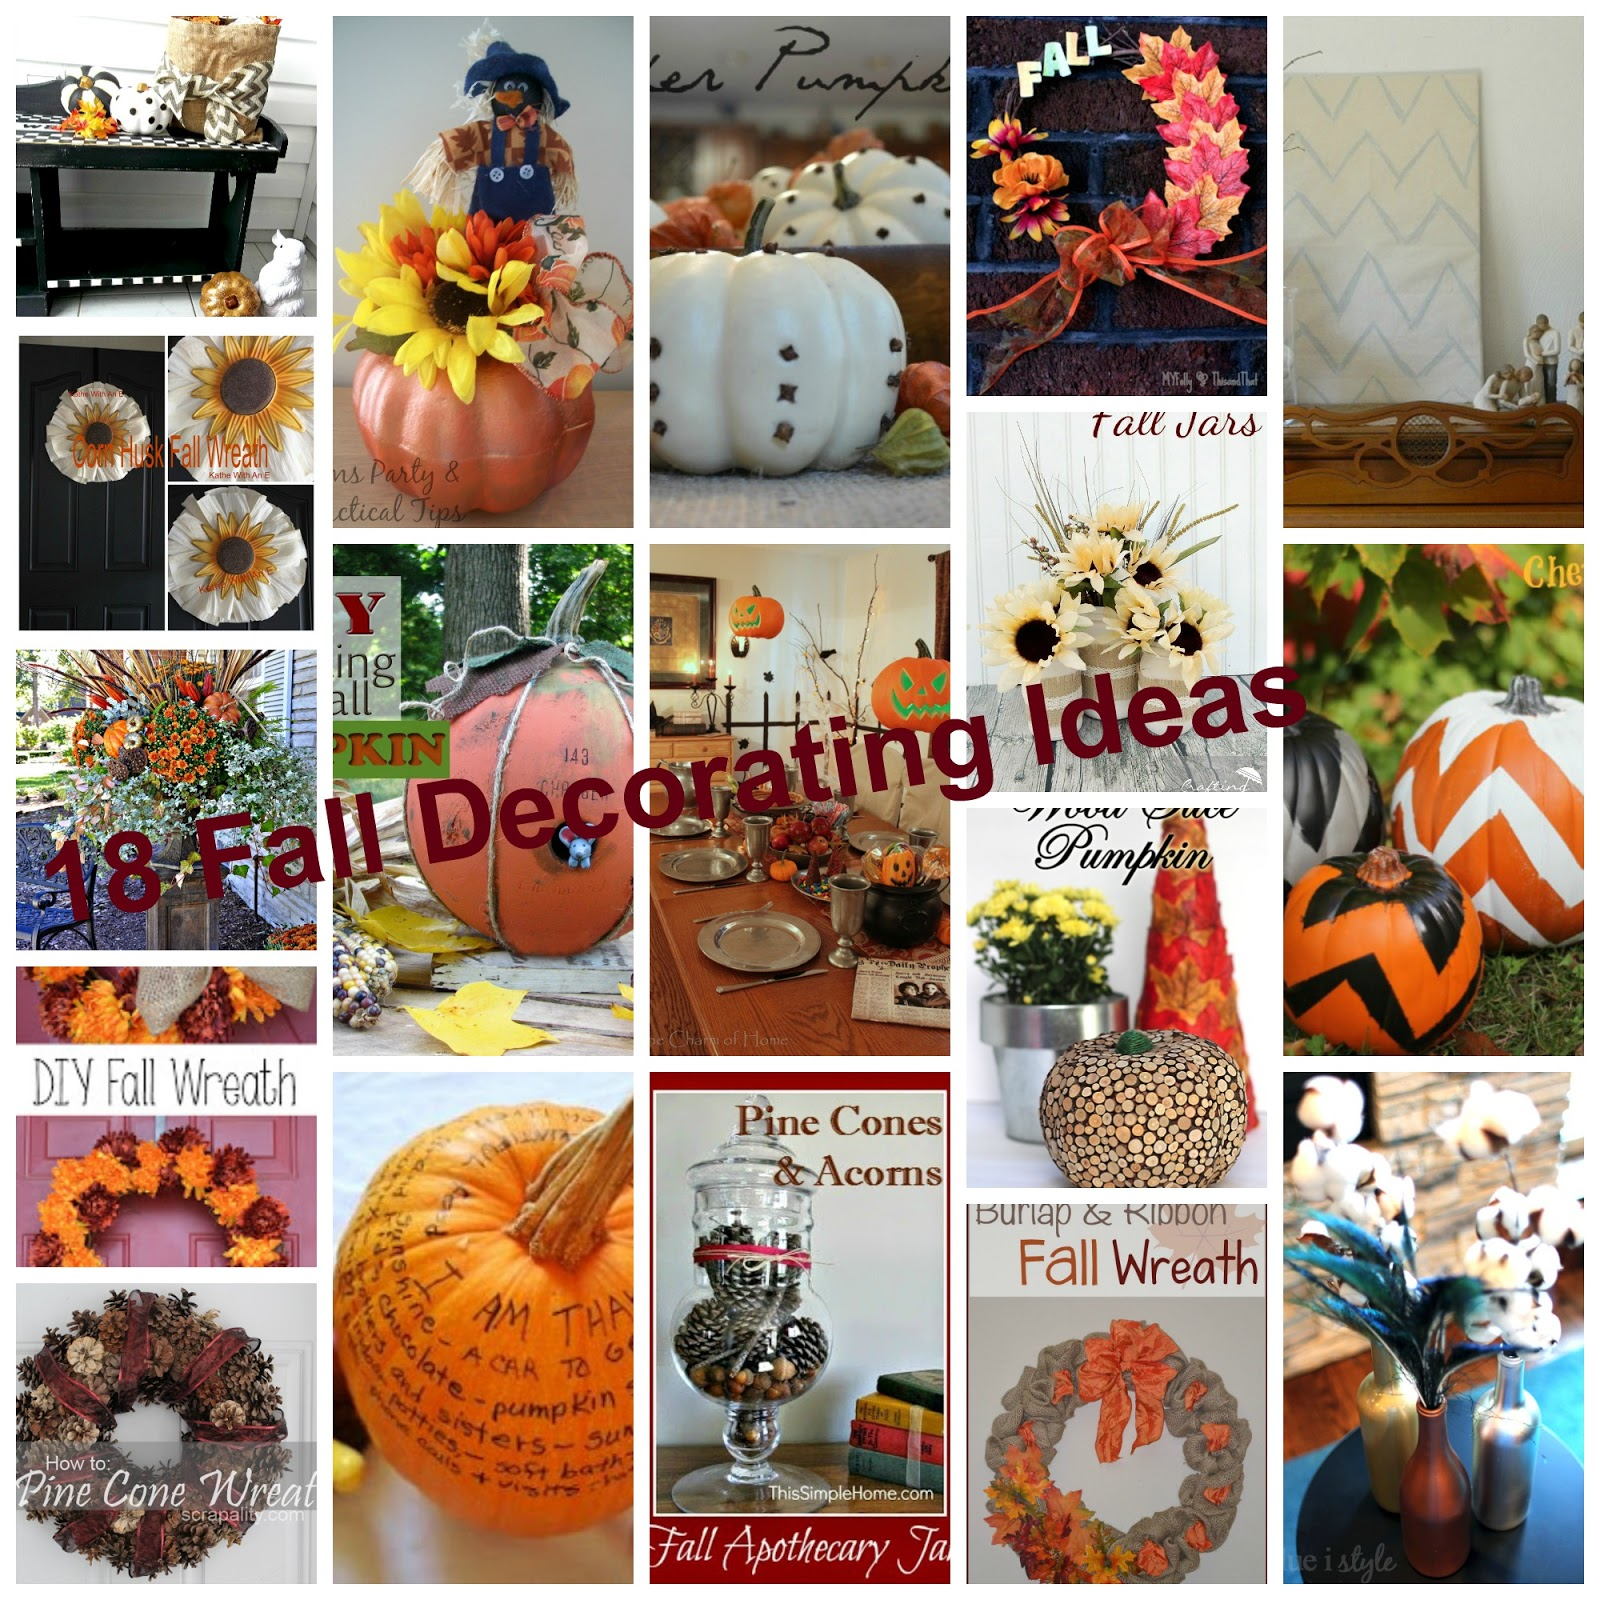 18 Fall Decorating Ideas - Kathe With An E